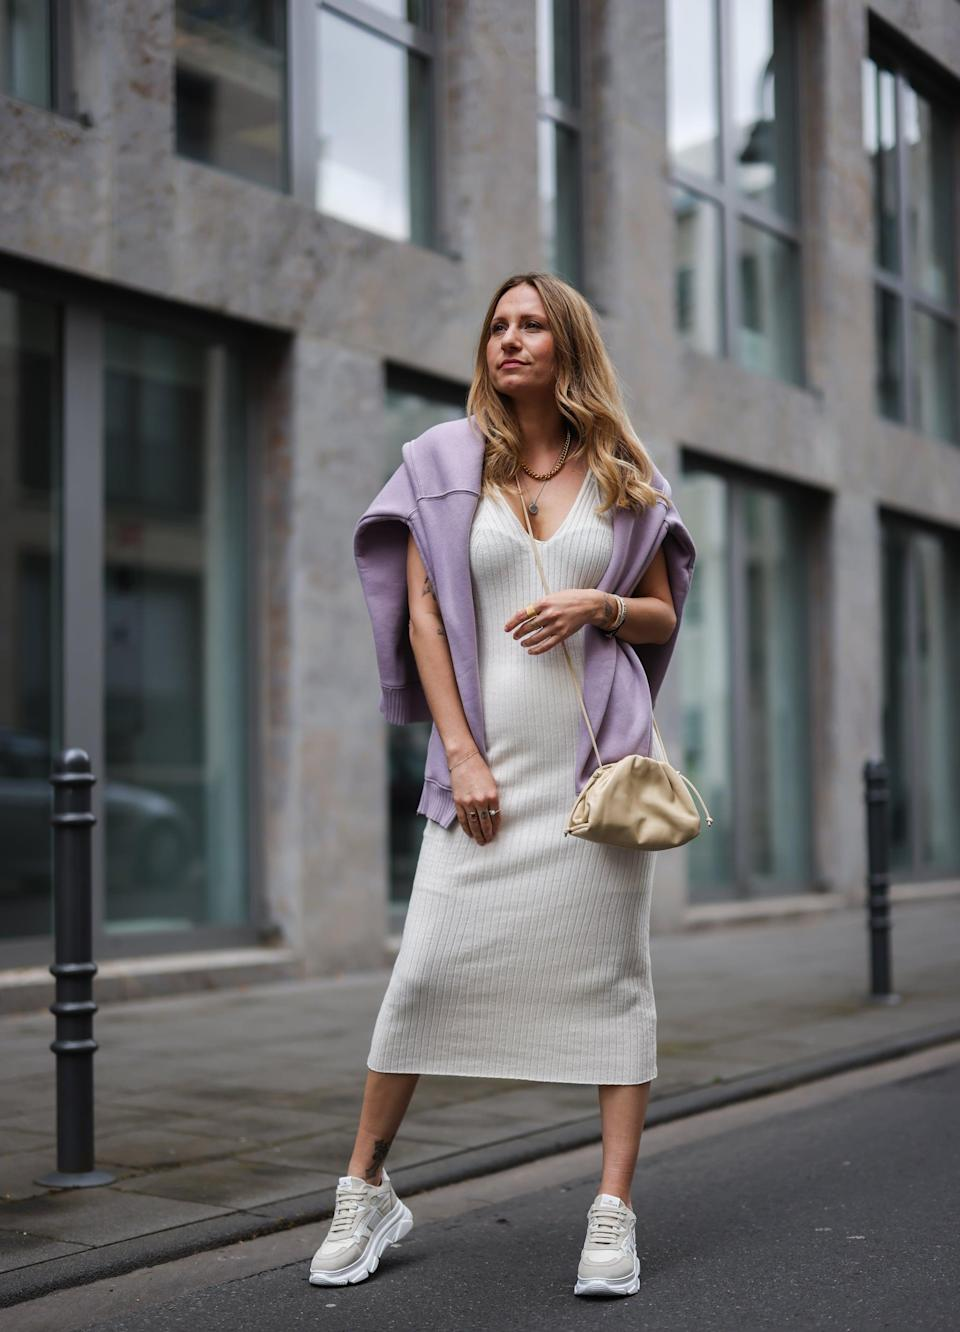 <p>For an off-duty uniform, style your knit dress with a pair of sneakers and wrap a sweater around your neck to keep the chills away. Dial up the practicality with a crossbody bag, and you've just found your everyday look.</p>